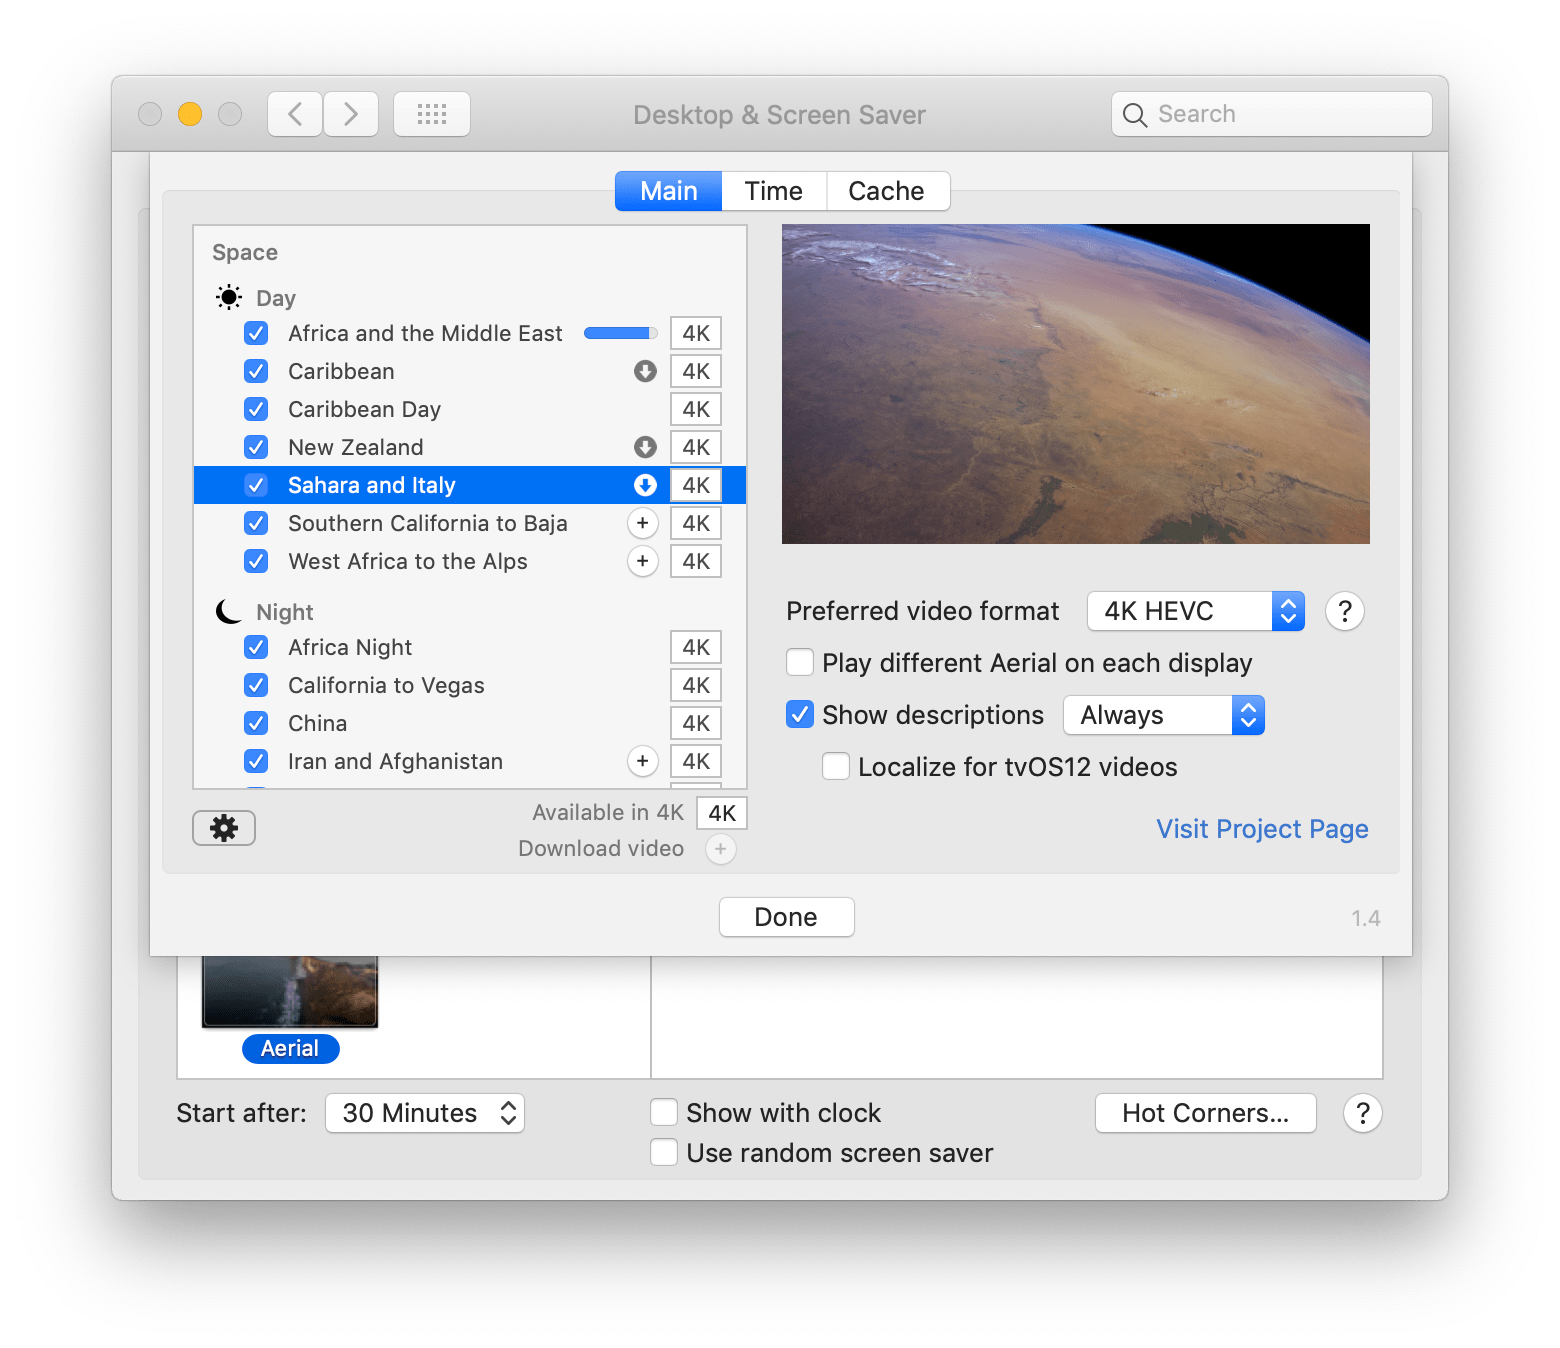 Displaying extra descriptions on space video (international